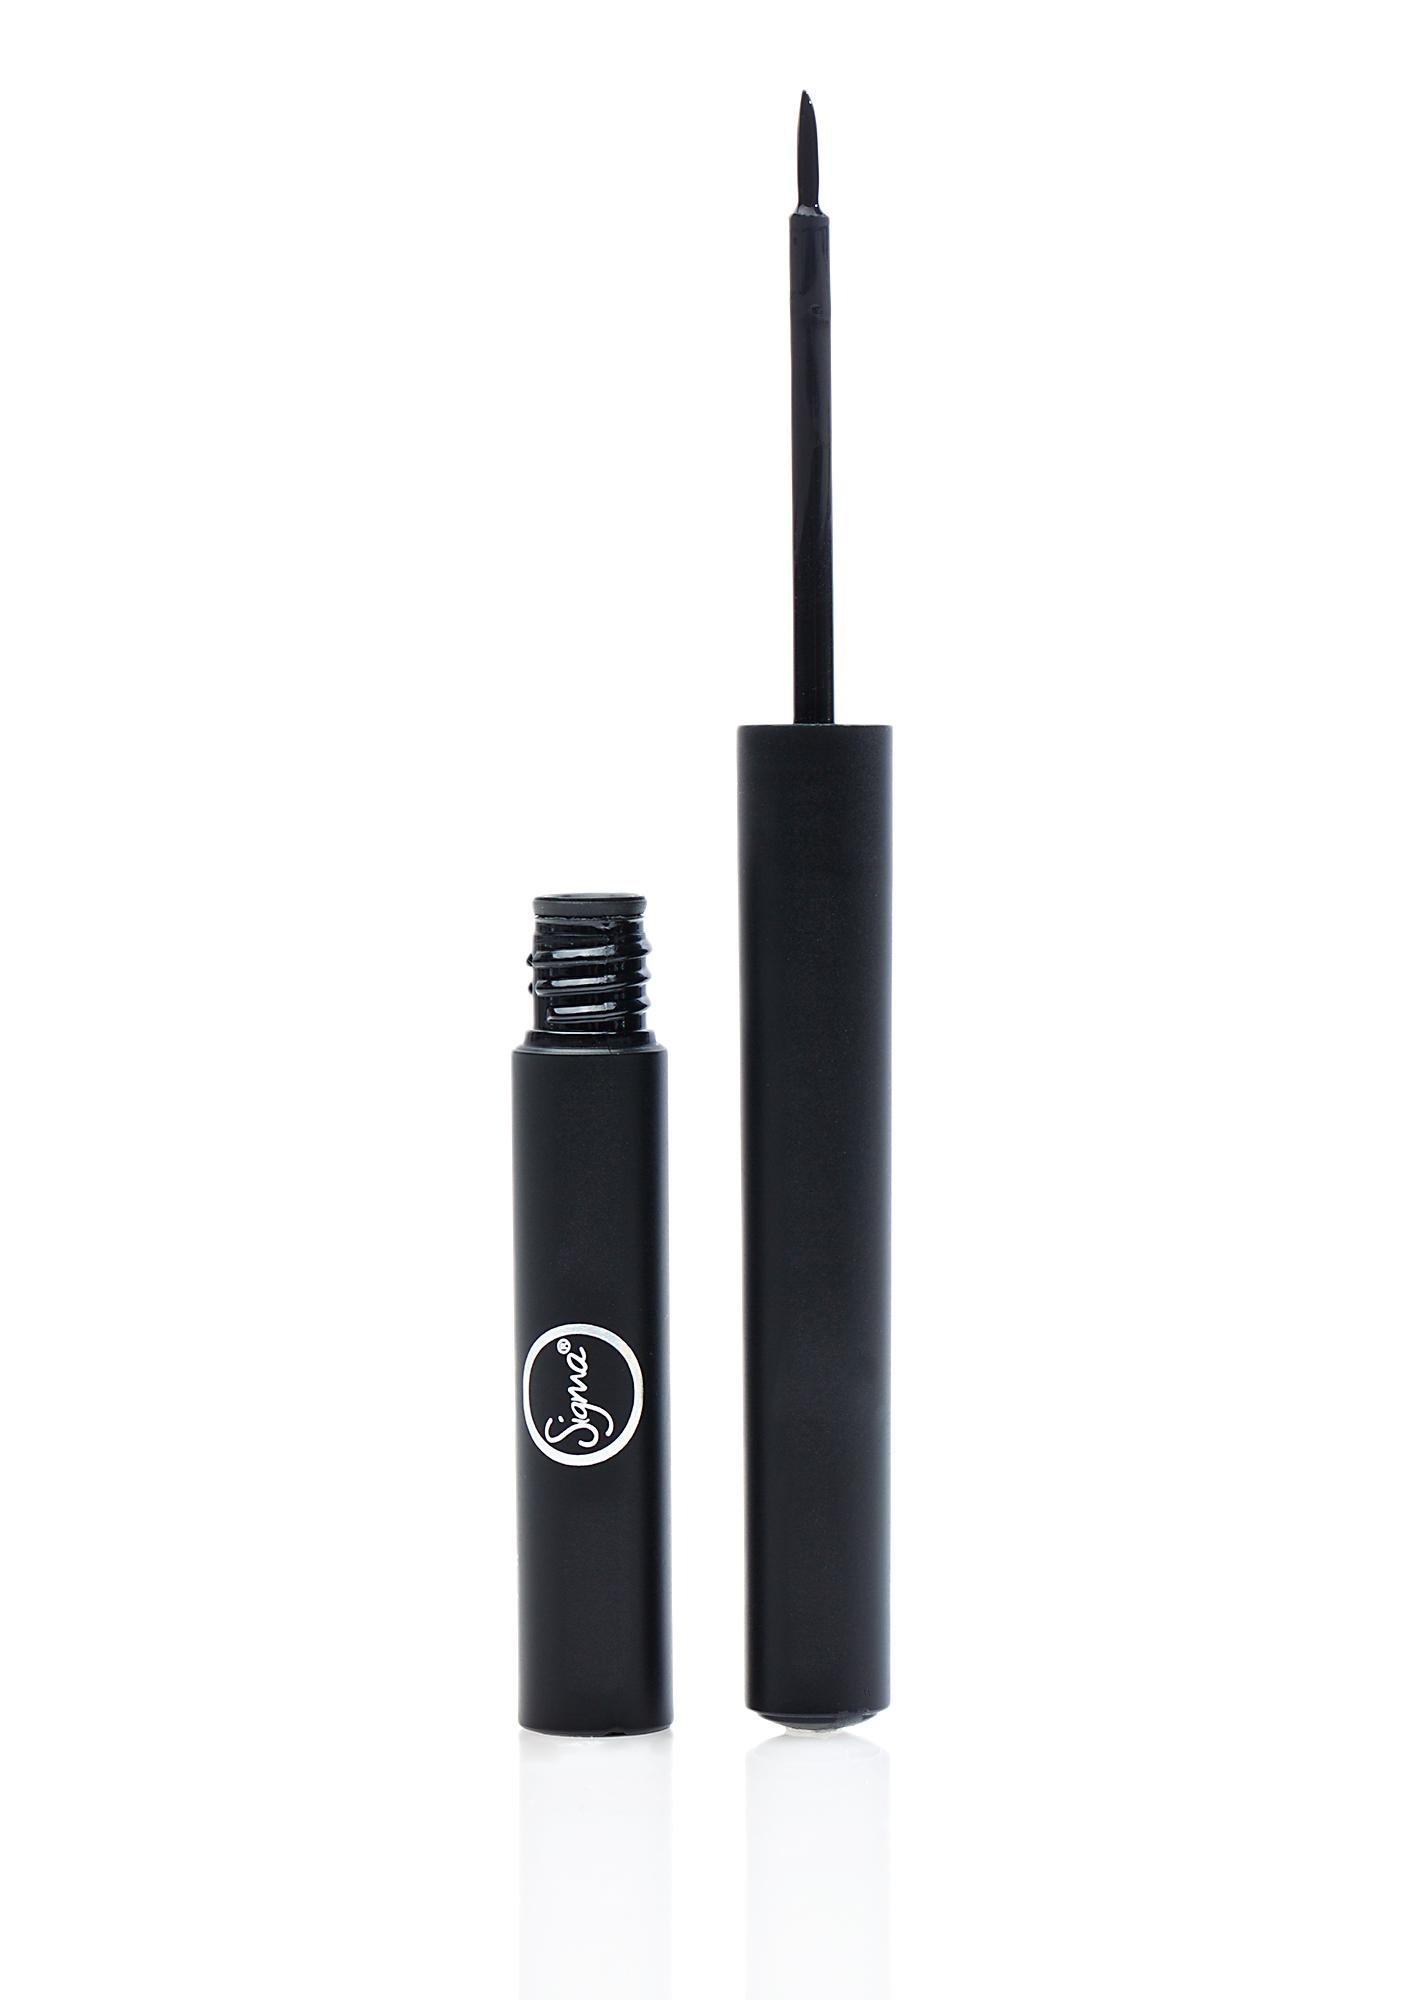 Sigma Legend Line Ace Liquid Liner